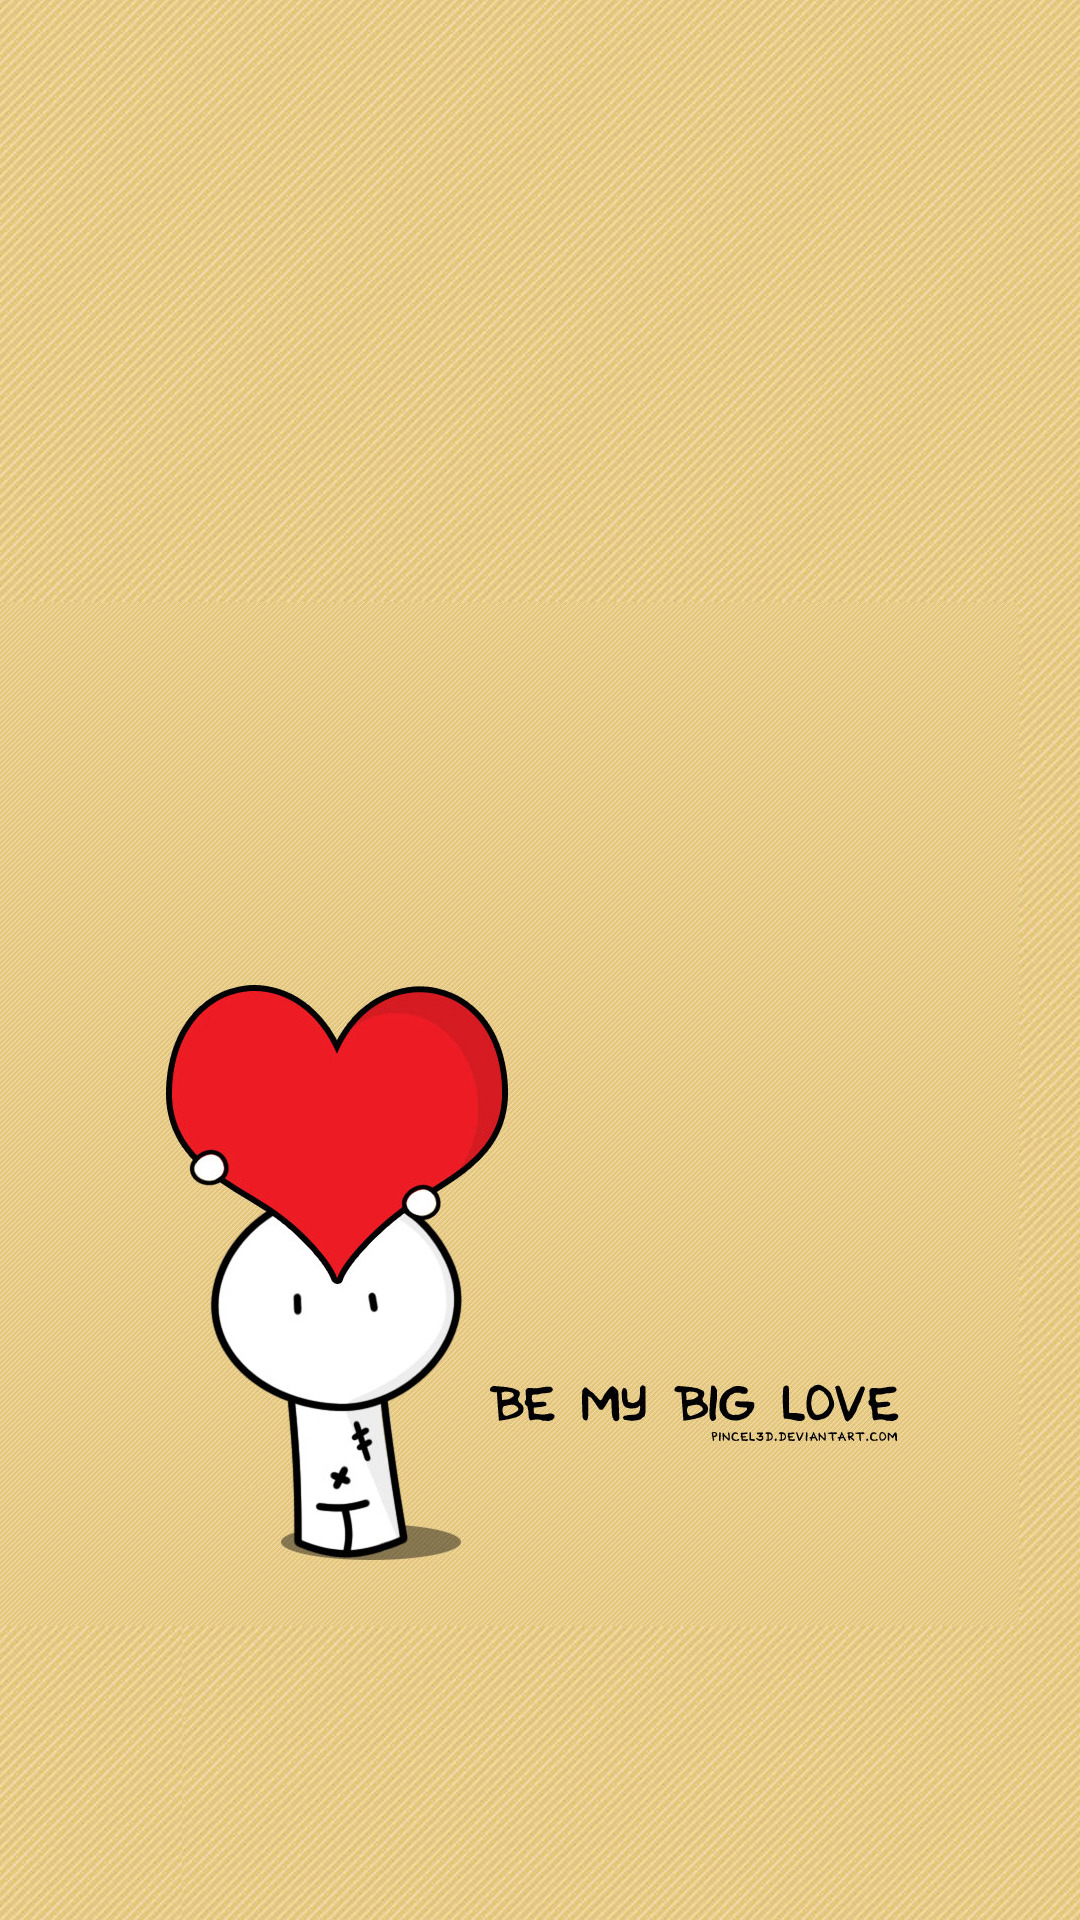 Most Inspiring Cartoon Love HD Wallpaper For Android - Be-My-Big-Love-Valentines-Illustration  Best Photo Reference_358121.jpg